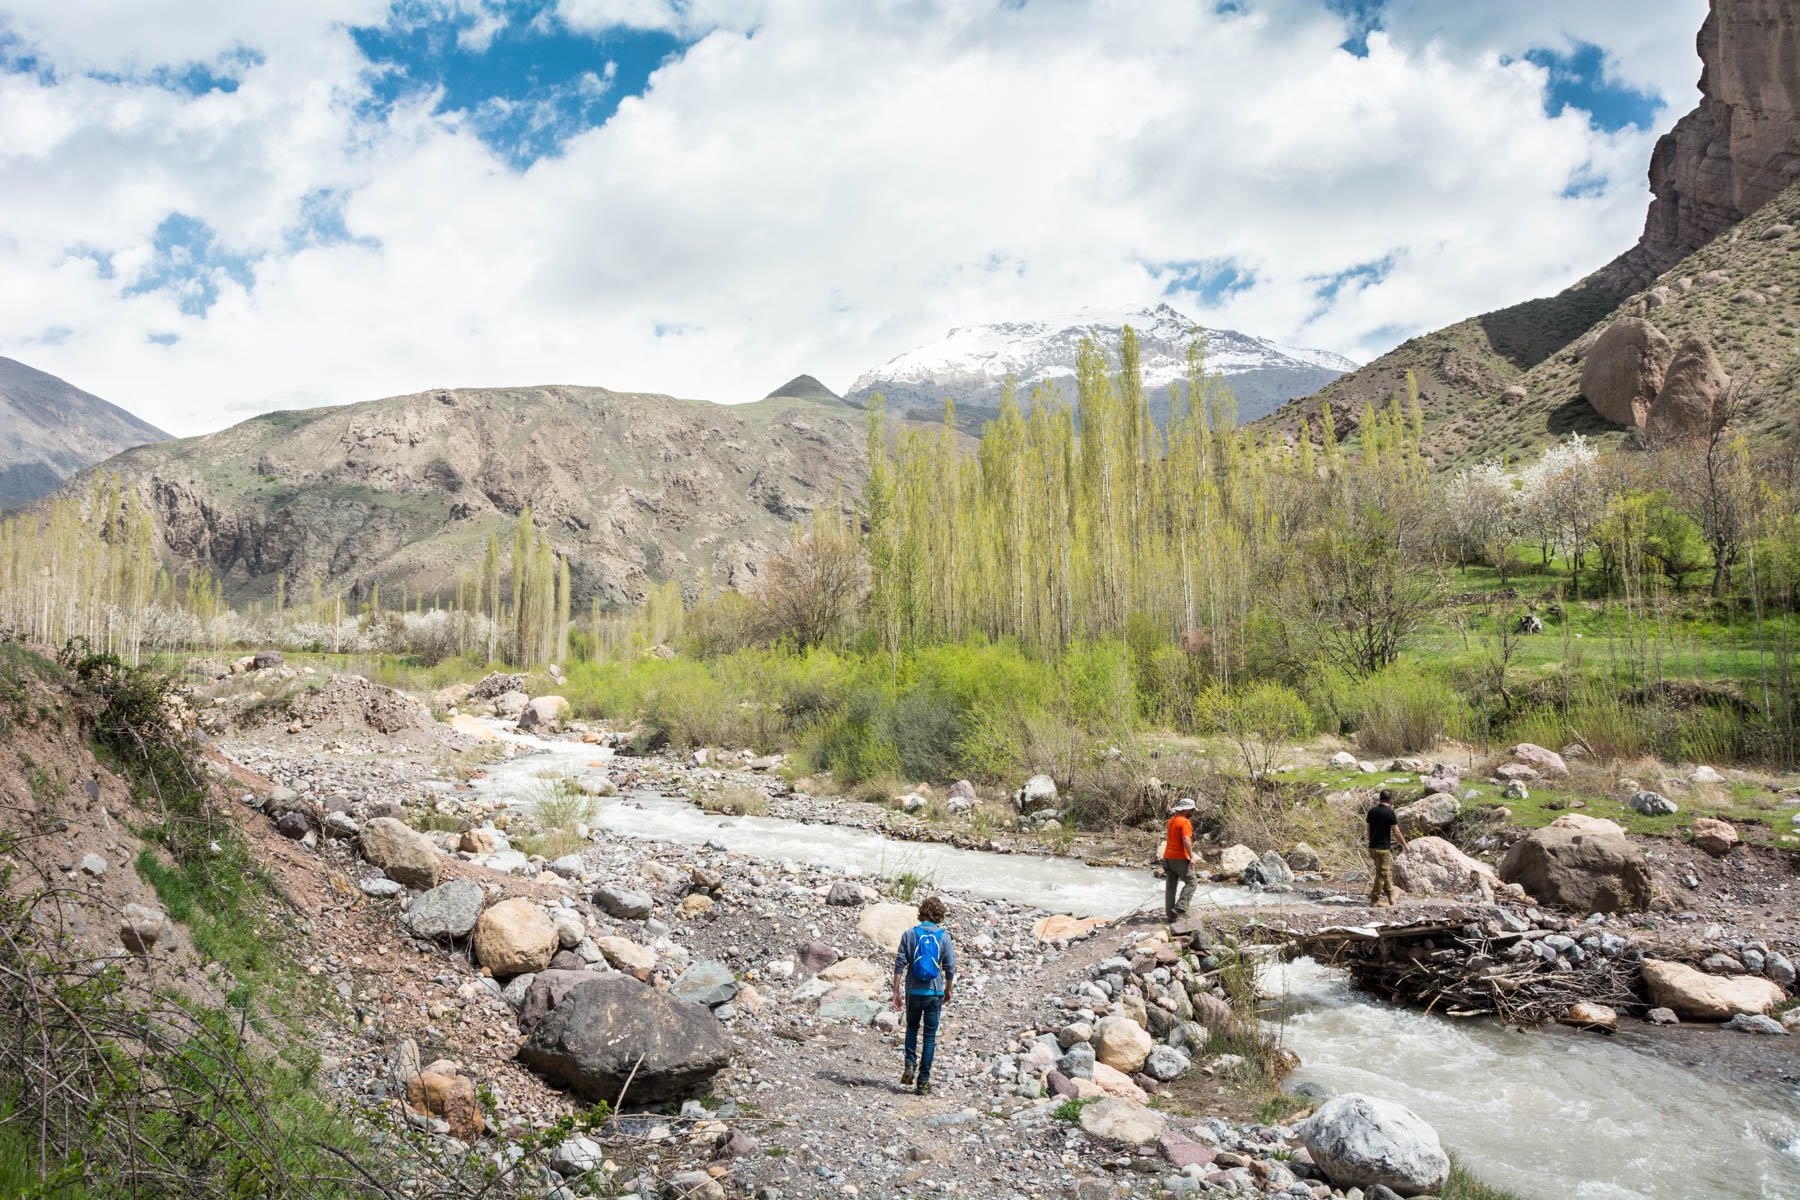 Crossing a stream to enter gorges in the Alamut Valley in Iran